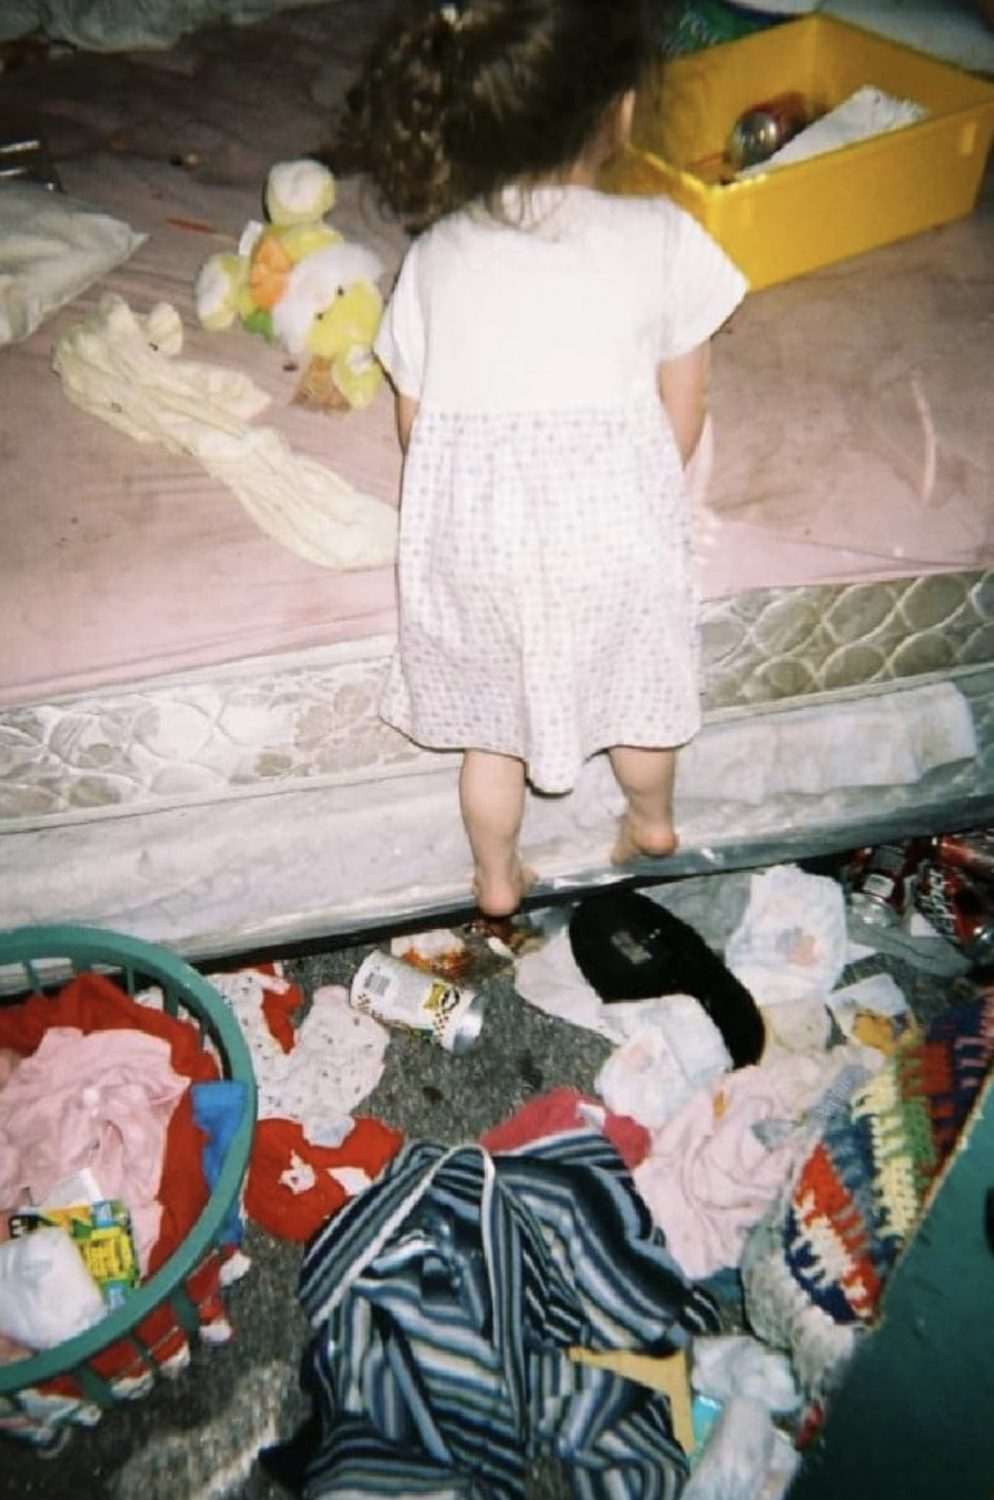 girls shocking childhood photos show the reality of being raised by a drug-addicted mother.